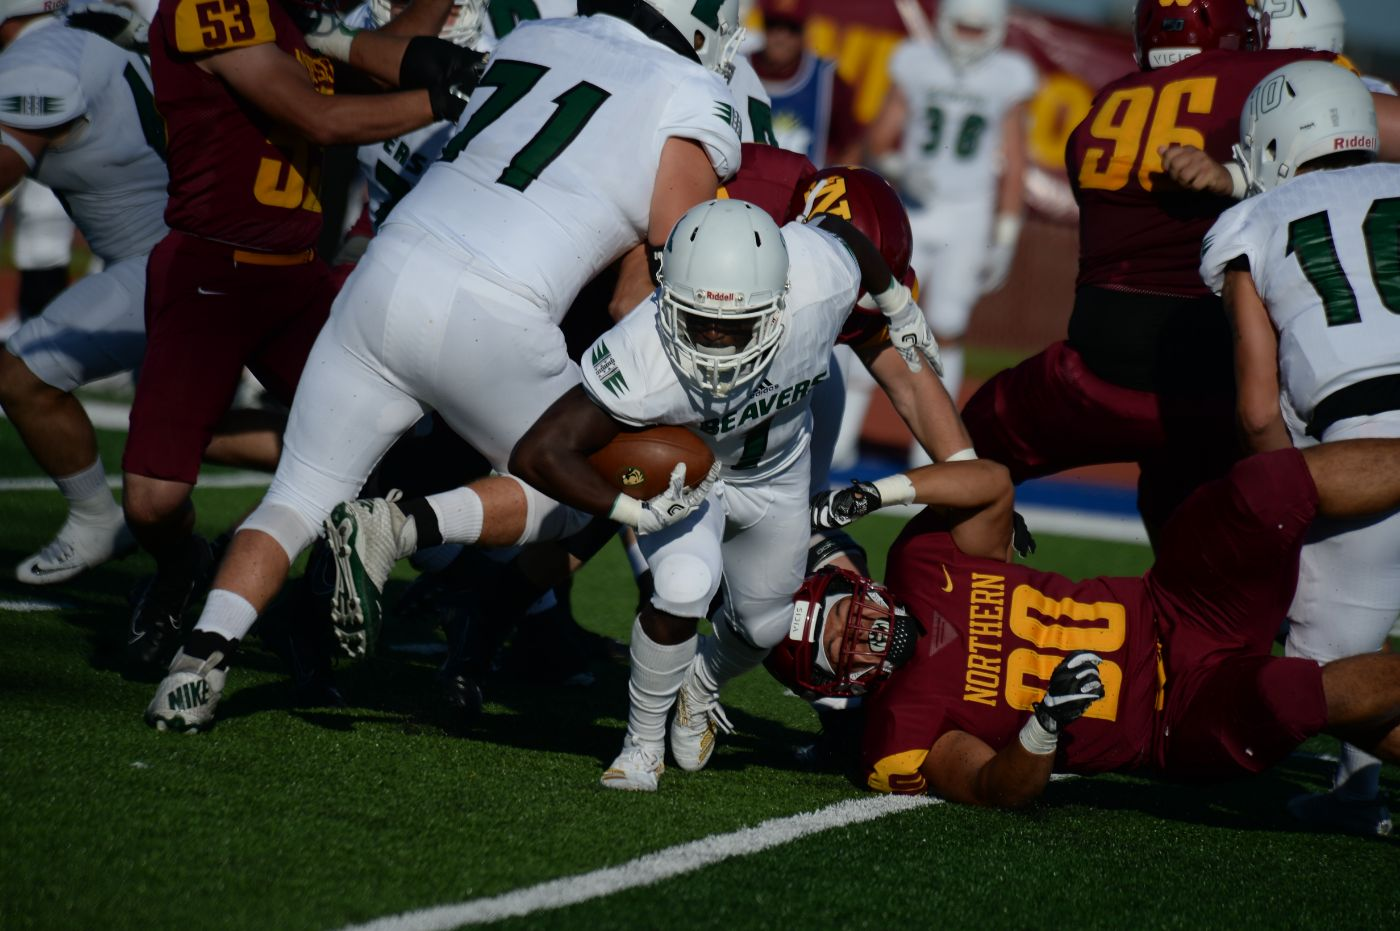 Alt throws four touchdowns, defense forces four turnovers in 33-7 win